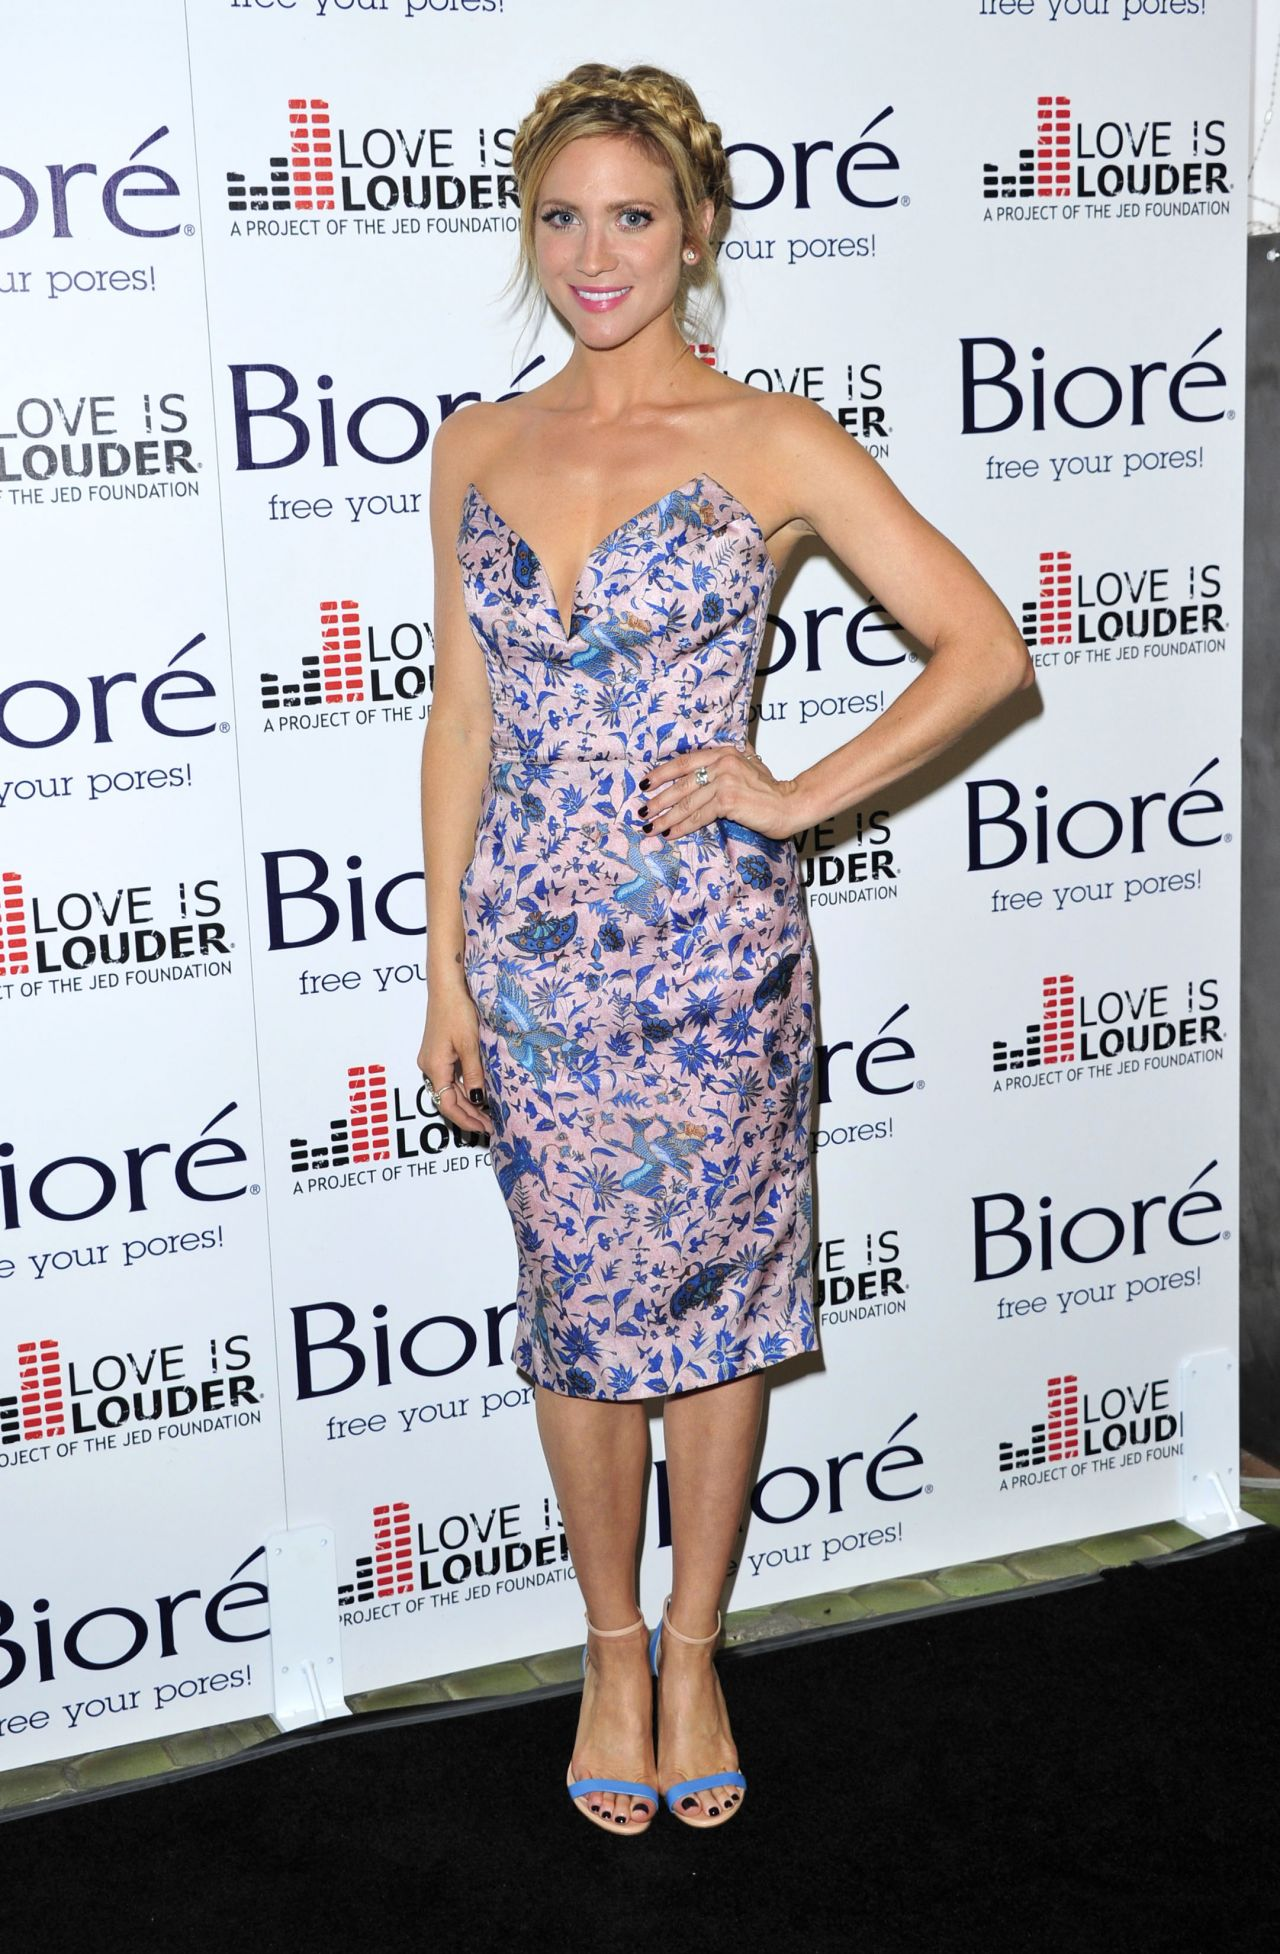 Brittany Snow Love Is Louder Project Event In Los